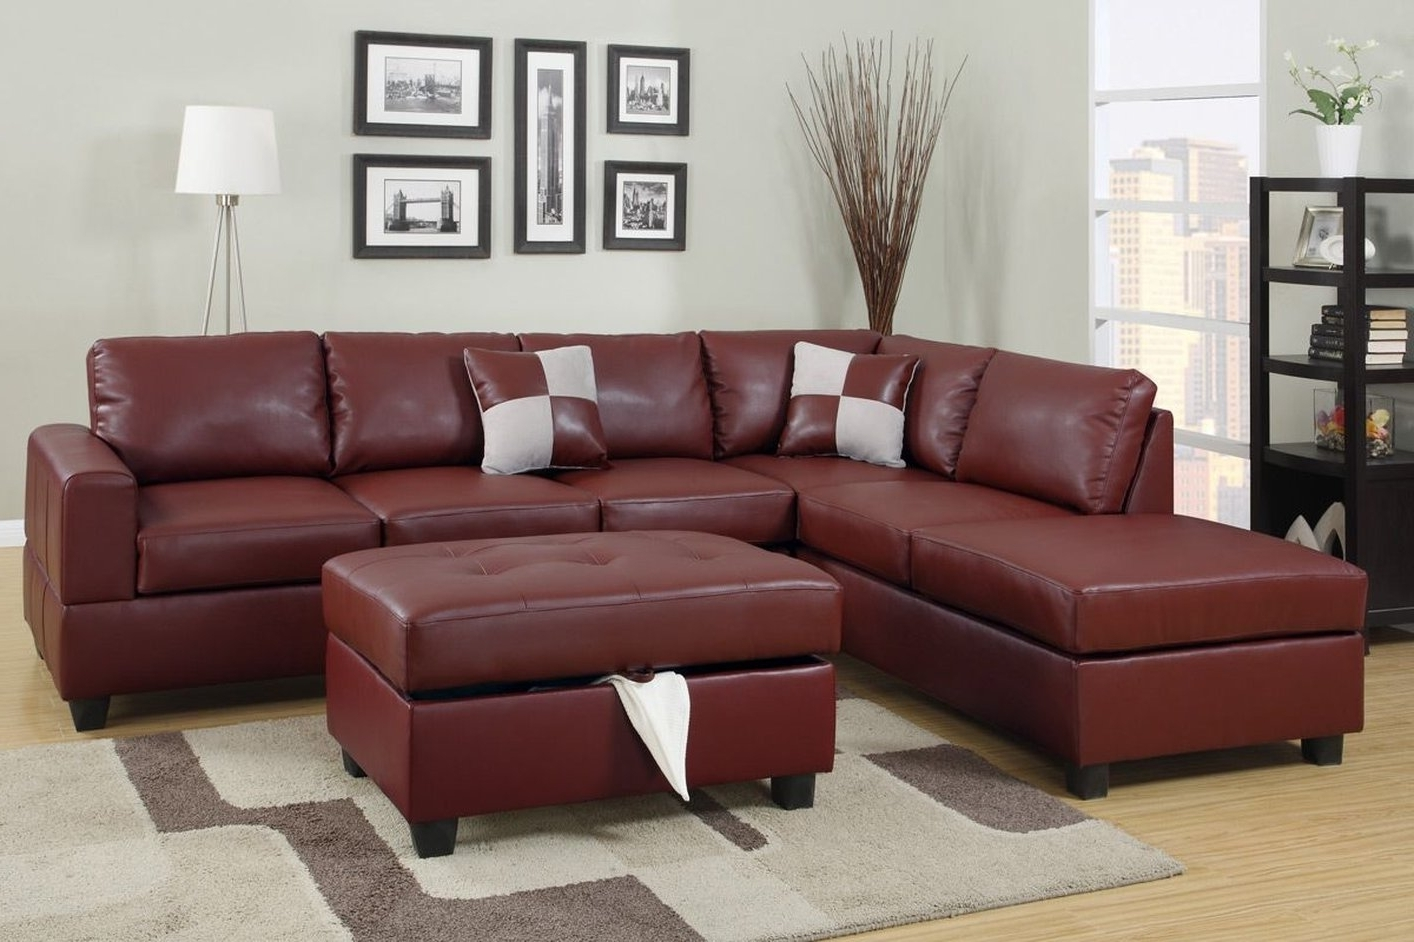 Red Sectional Sofas With Ottoman Intended For Most Recent April Red Leather Sectional Sofa And Ottoman – Steal A Sofa (View 8 of 20)